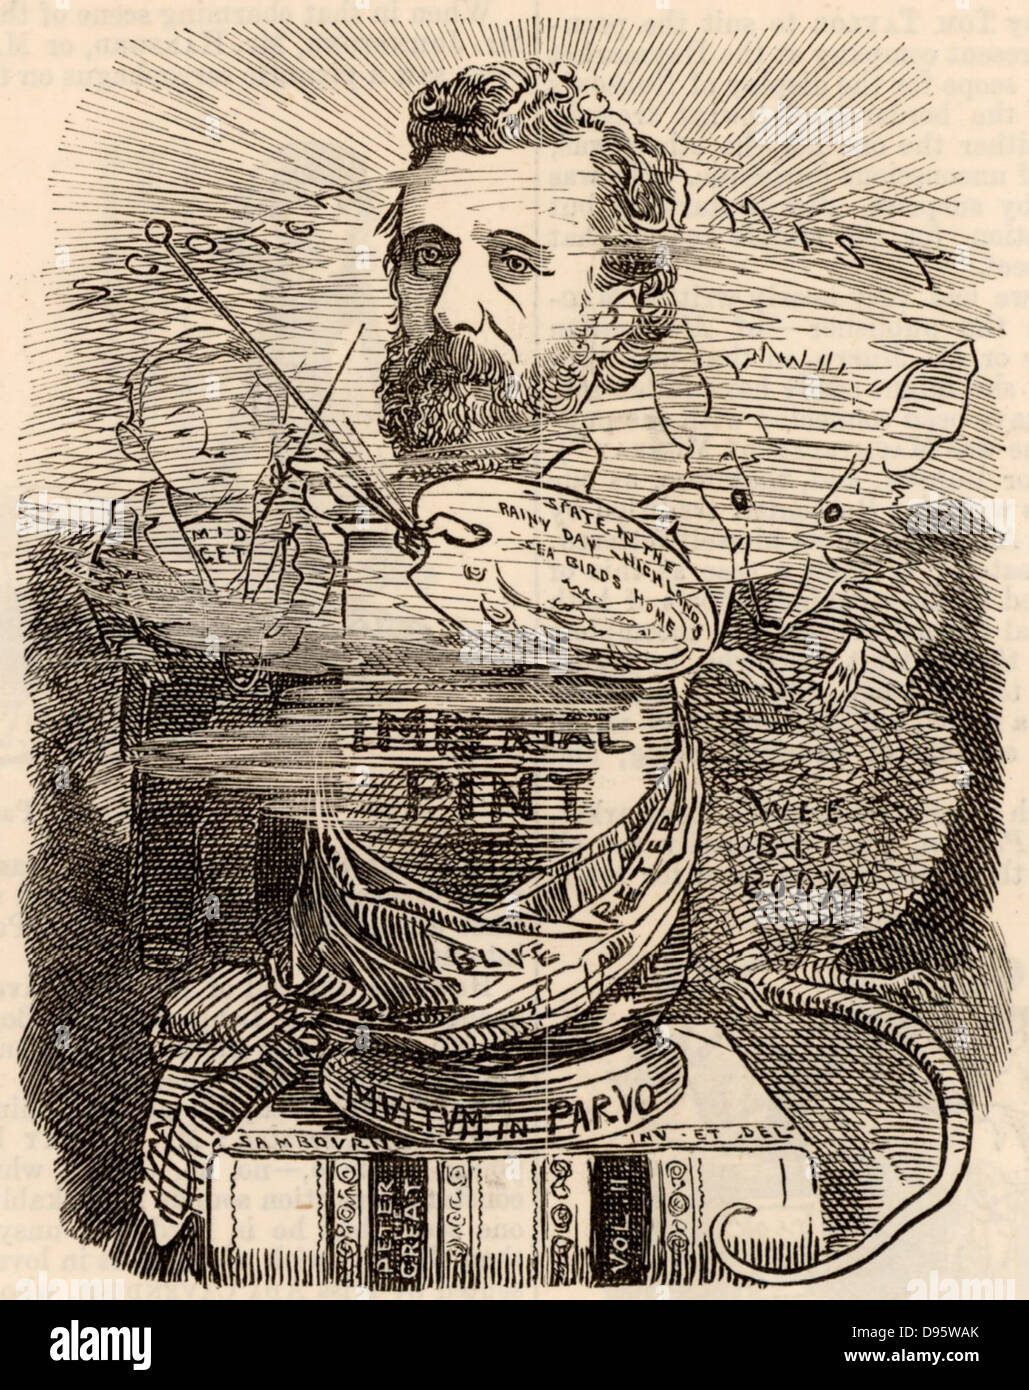 Peter Graham (1836-1921) Scottish painter. Cartoon by Edward Linley Sambourne in the Punch's Fancy Portraits - Stock Image